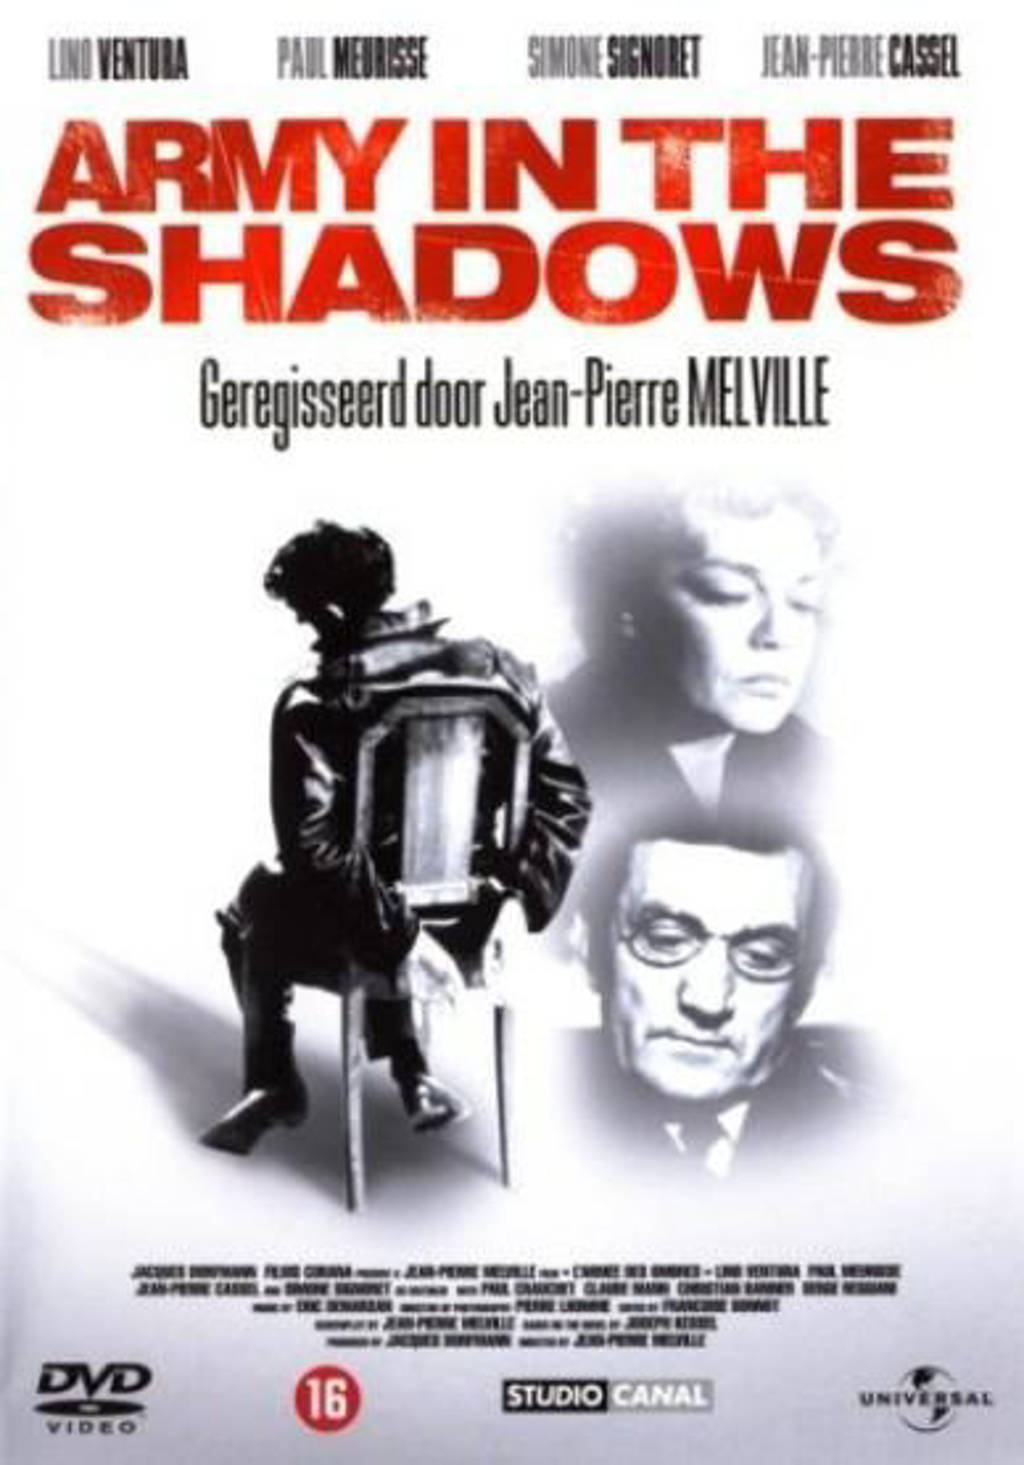 Army in the shadows (DVD)